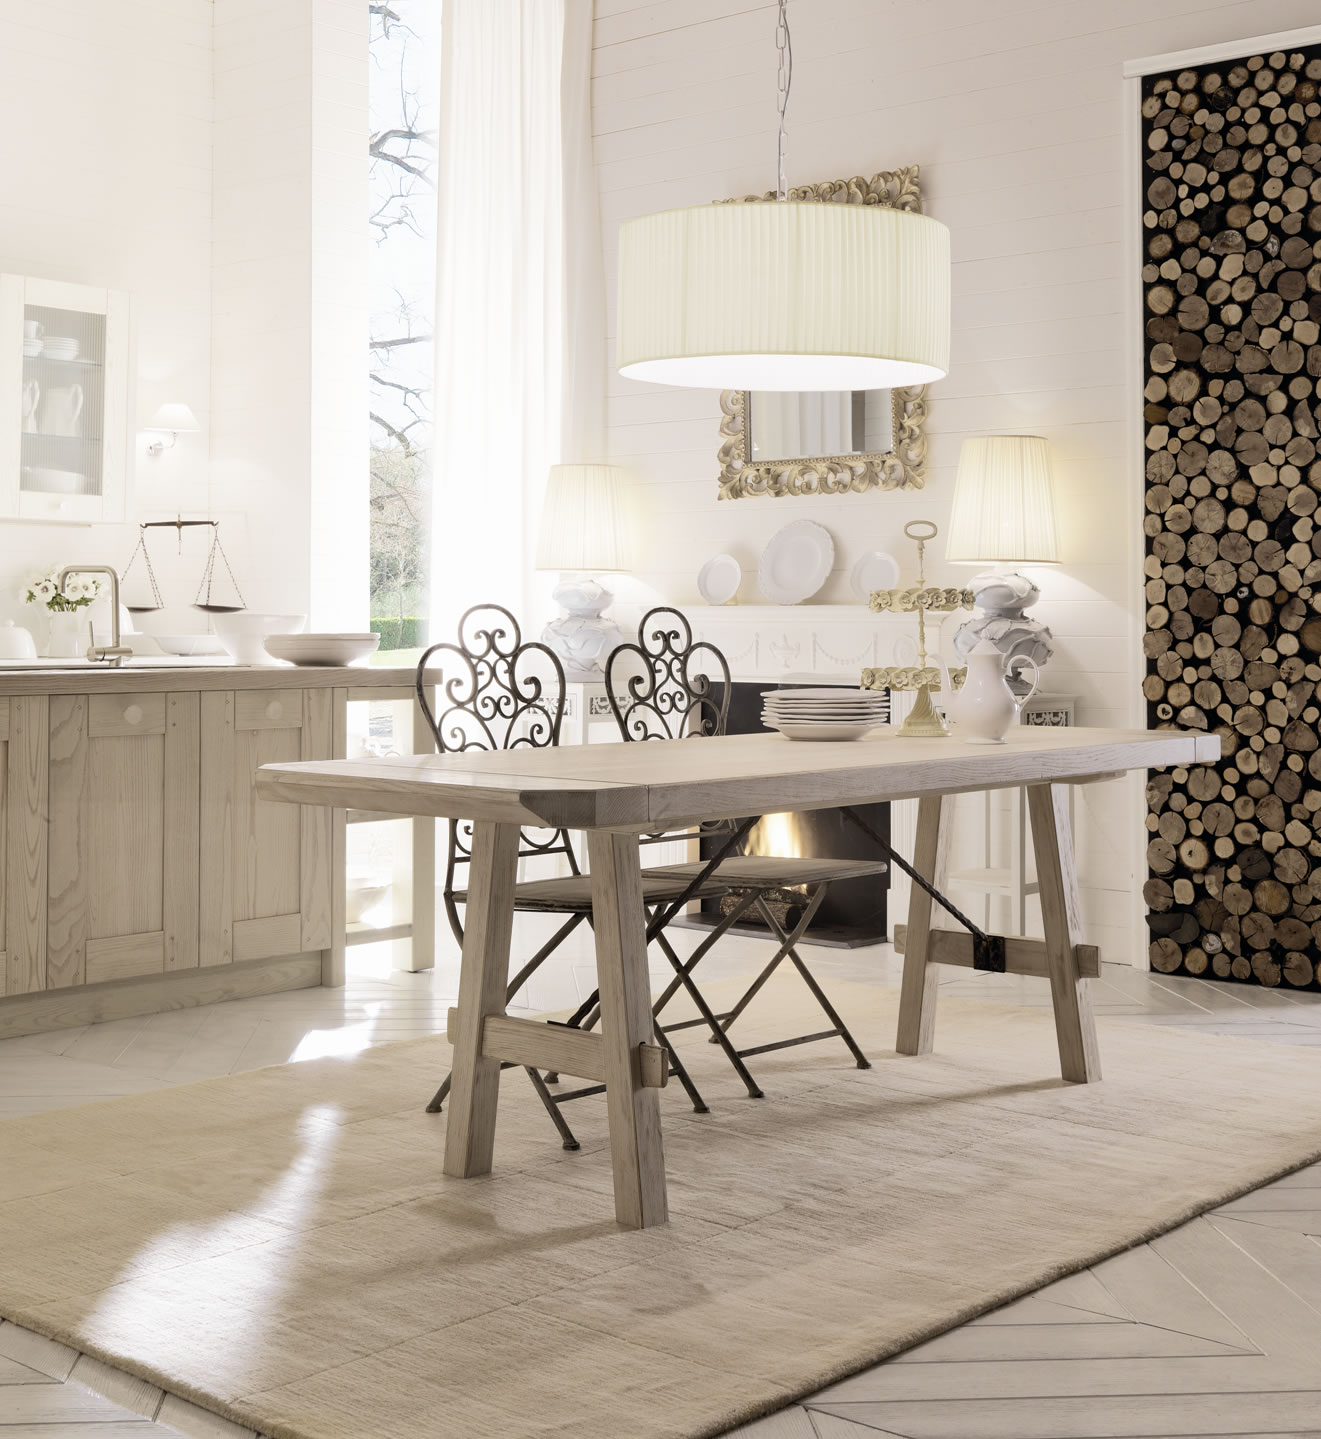 Italian country chic kitchens modular elegant kitchens solid ...